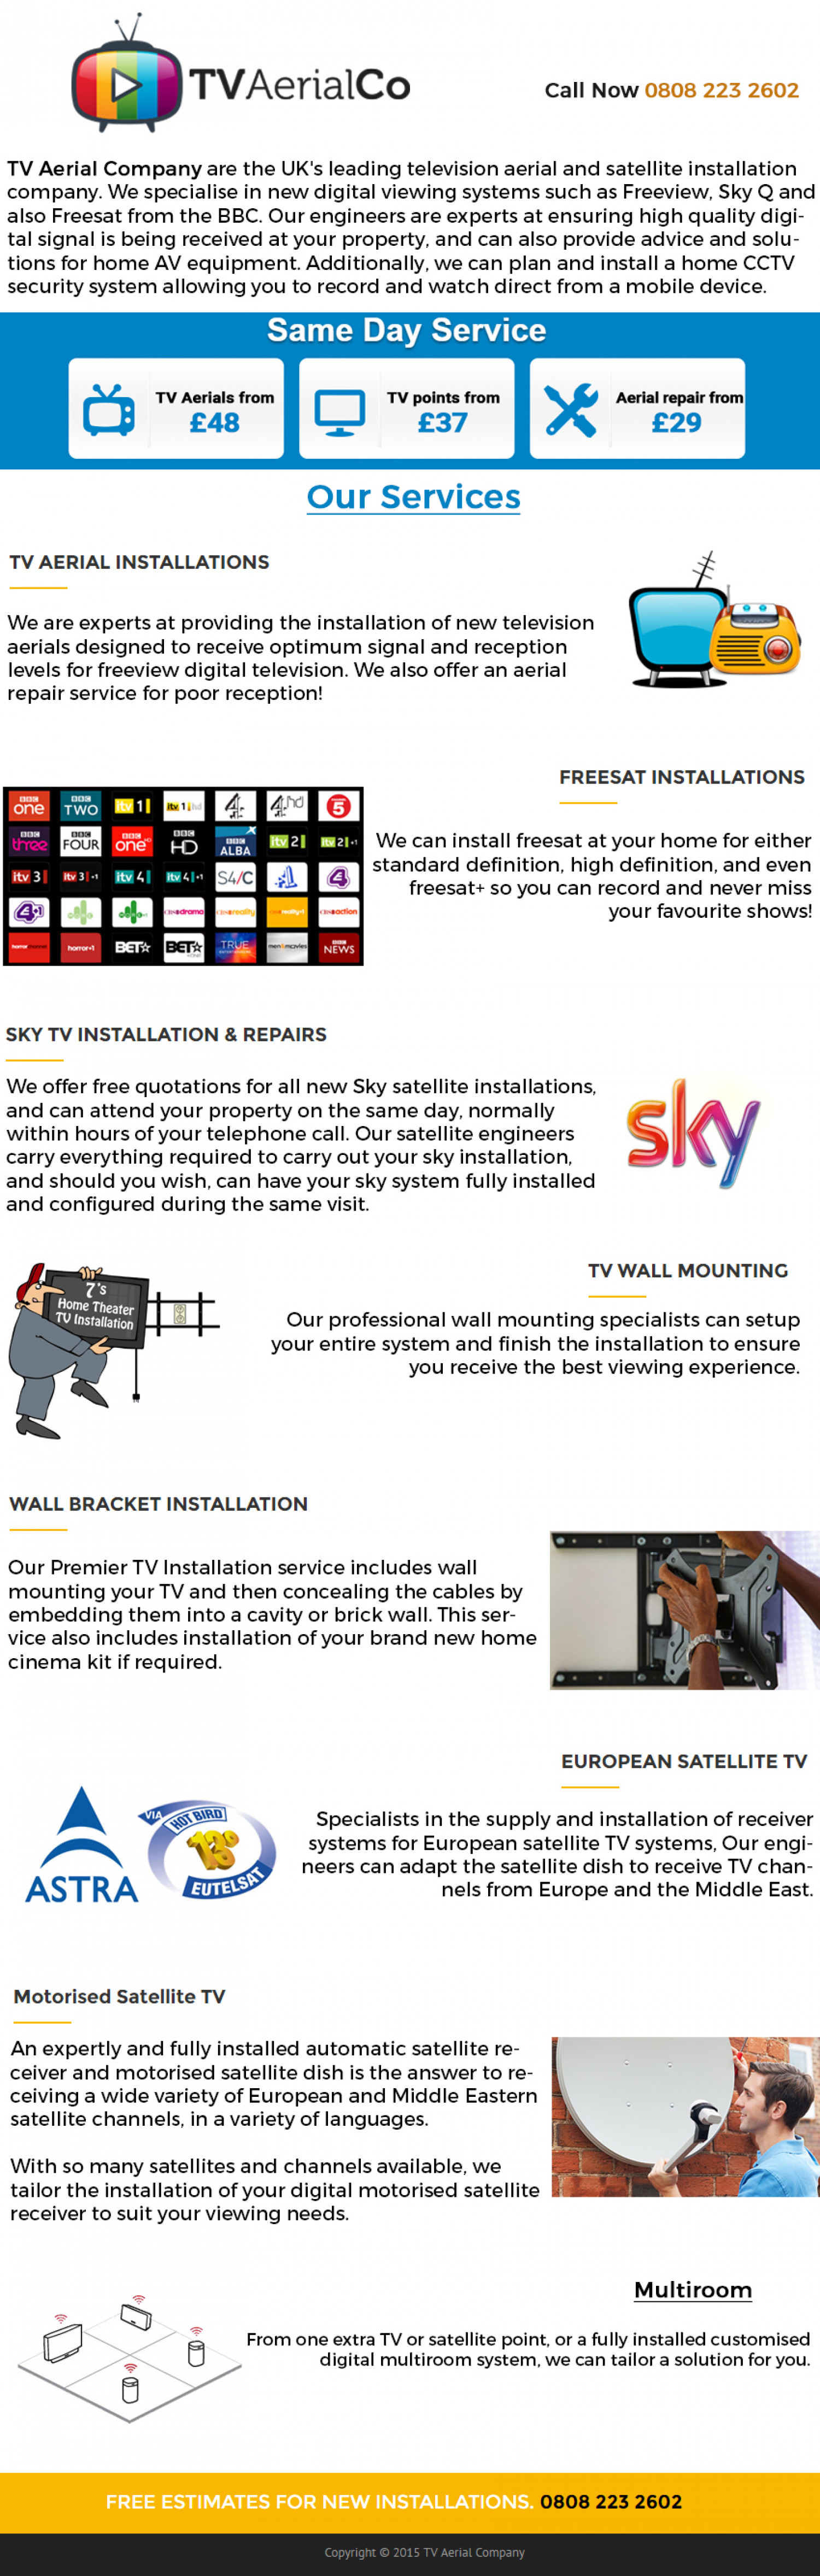 TV Aerial Company Infographics Infographic